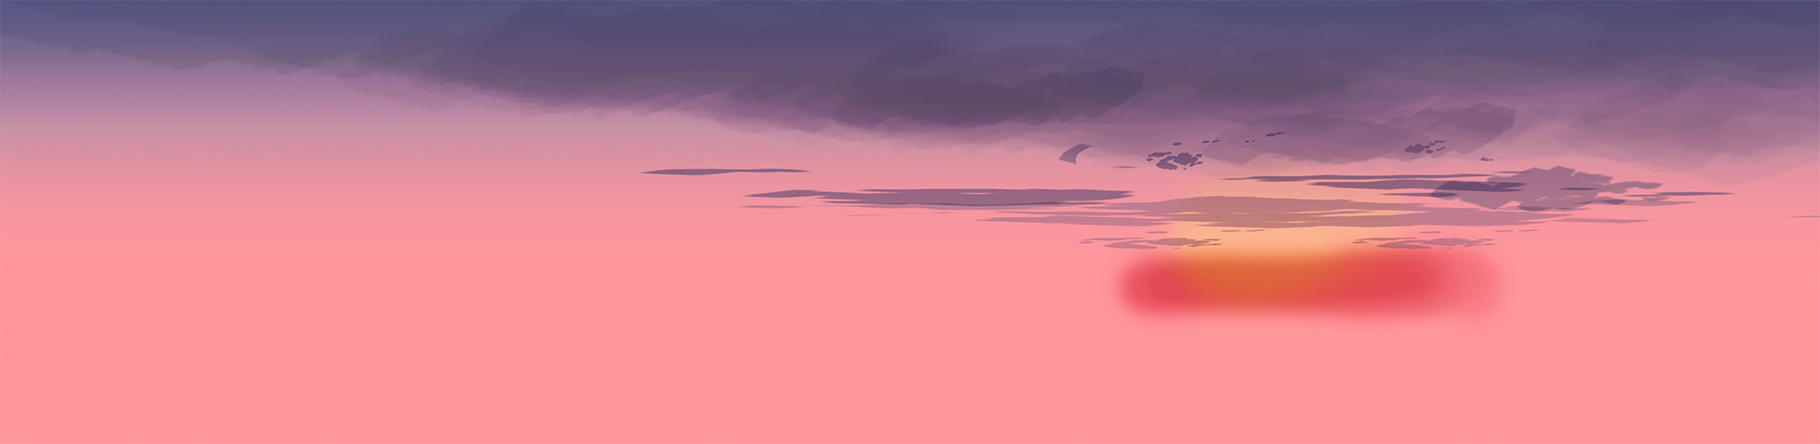 pink and purple illustrated sunset